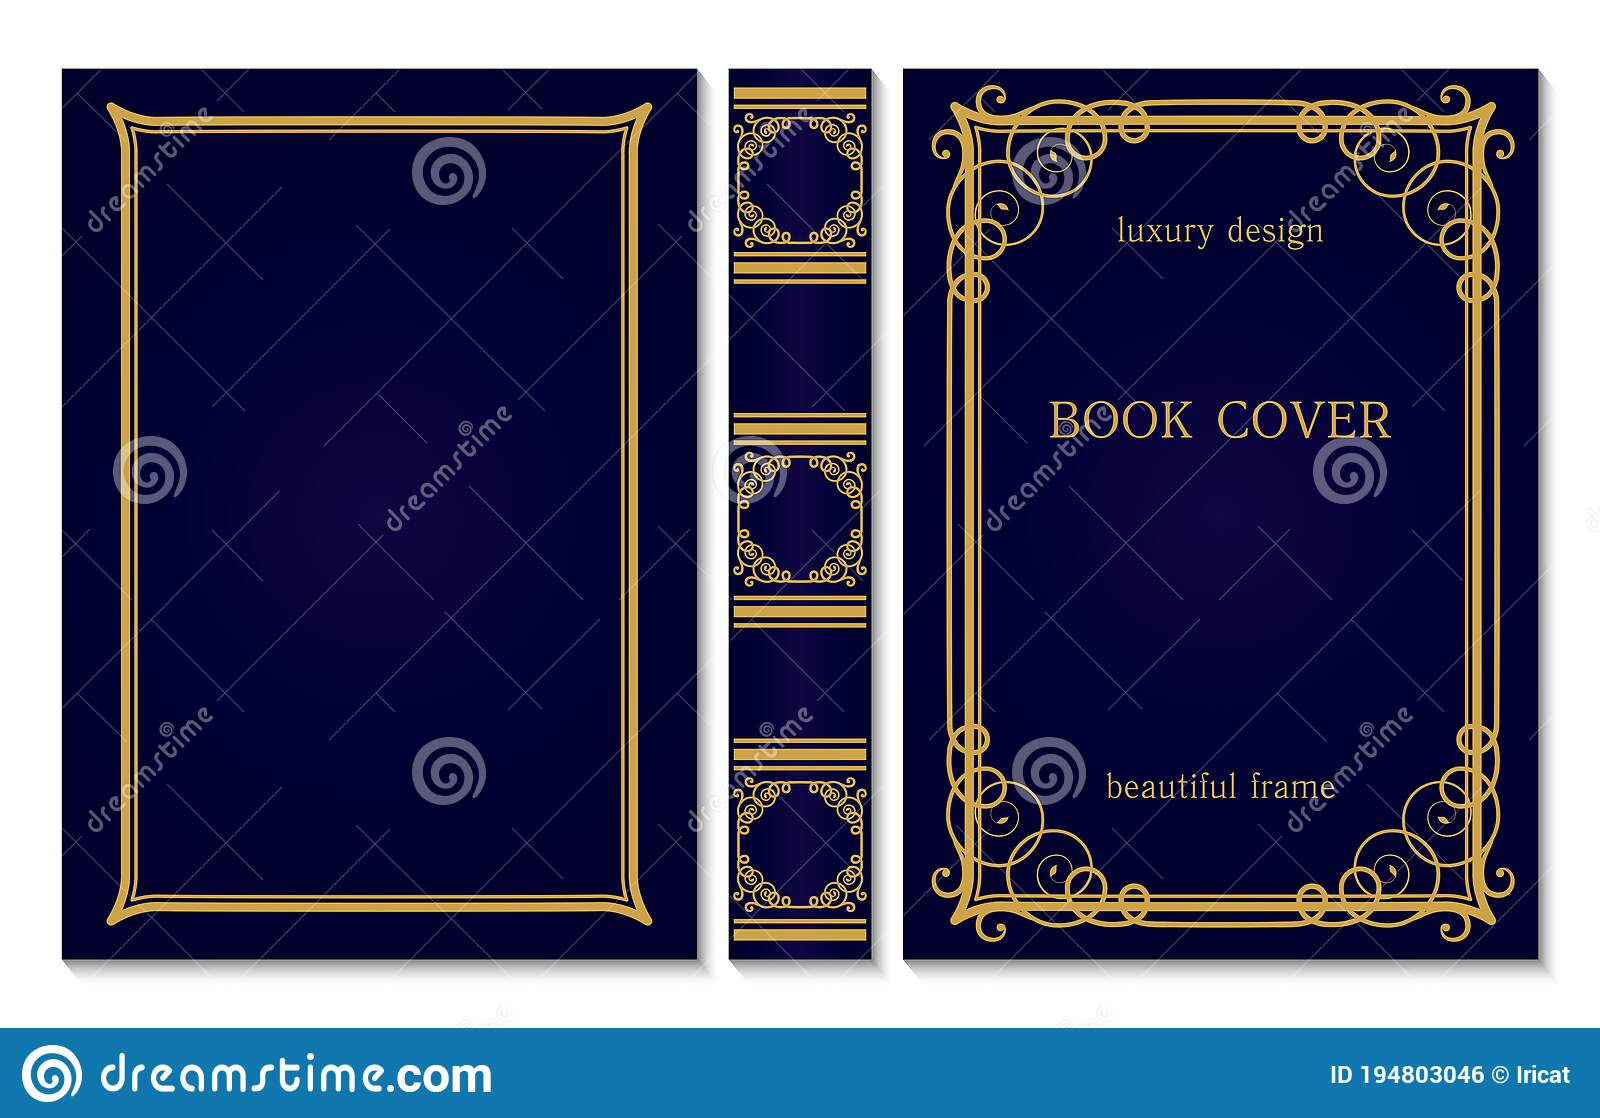 Book Cover And Spine Ornament Vintage Old Frames Royal Golden And Dark Blue Style Design Border To Be Printed On The Covers Of Stock Vector Illustration Of Label Decoration 194803046